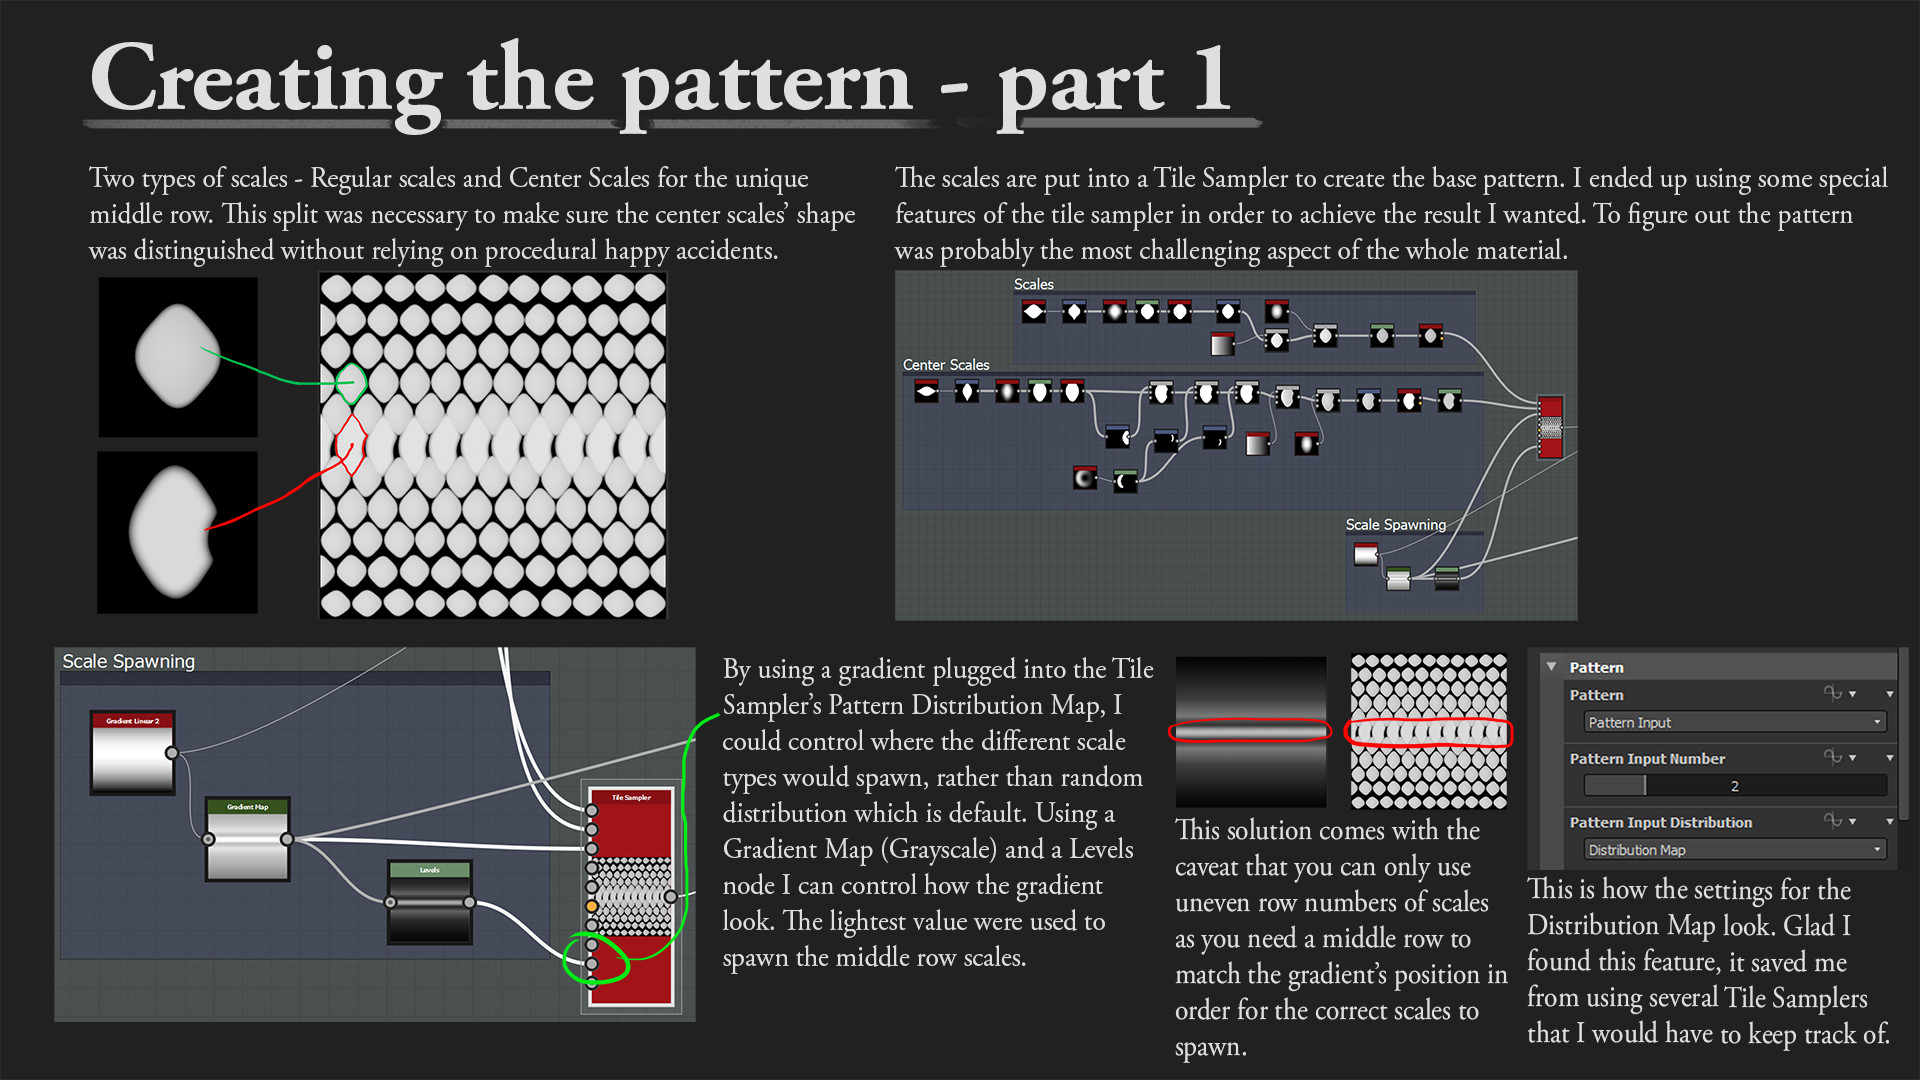 Olle norling creation of pattern smallersize